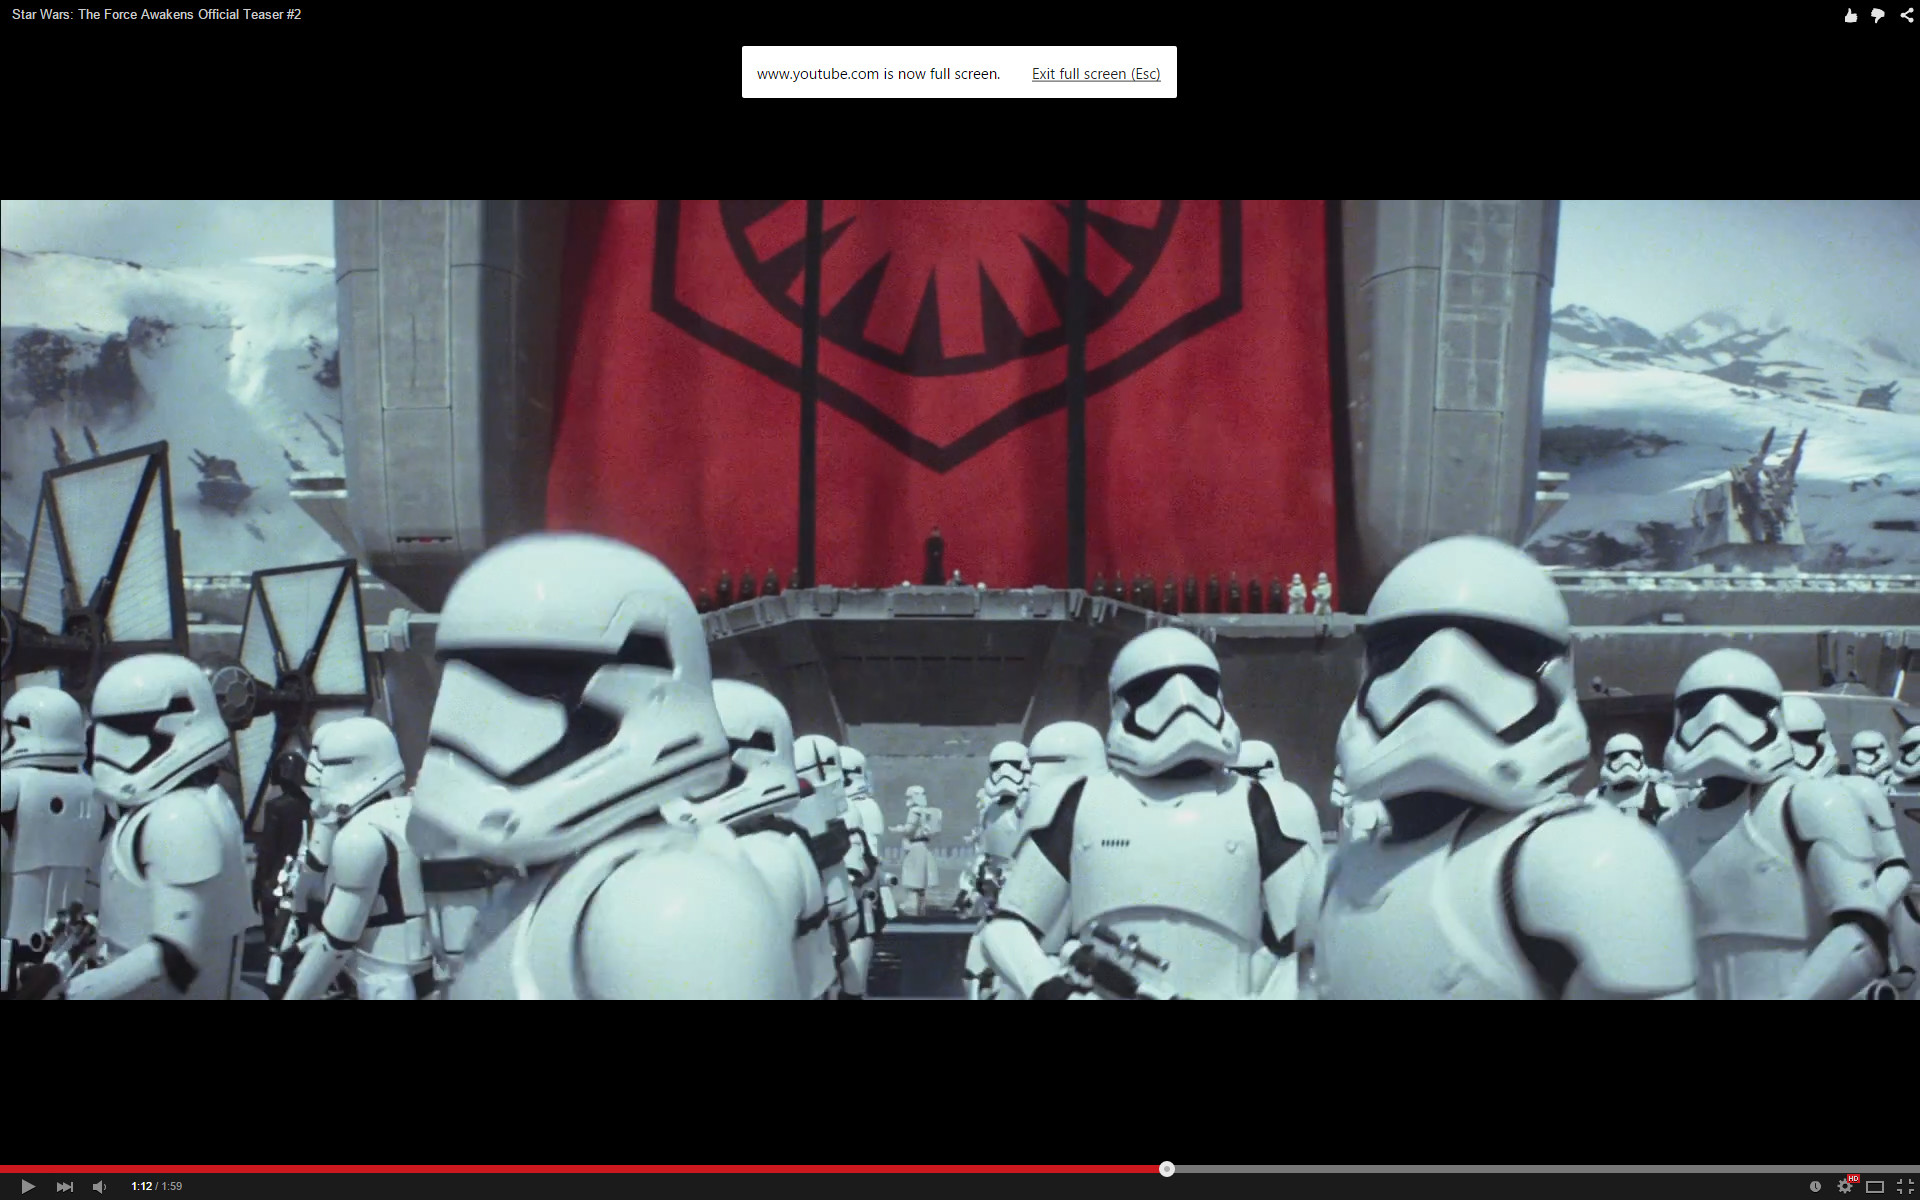 That emblem, those huge turrets in the background. Hell, those  stormtroopers look ready to tear shit up.